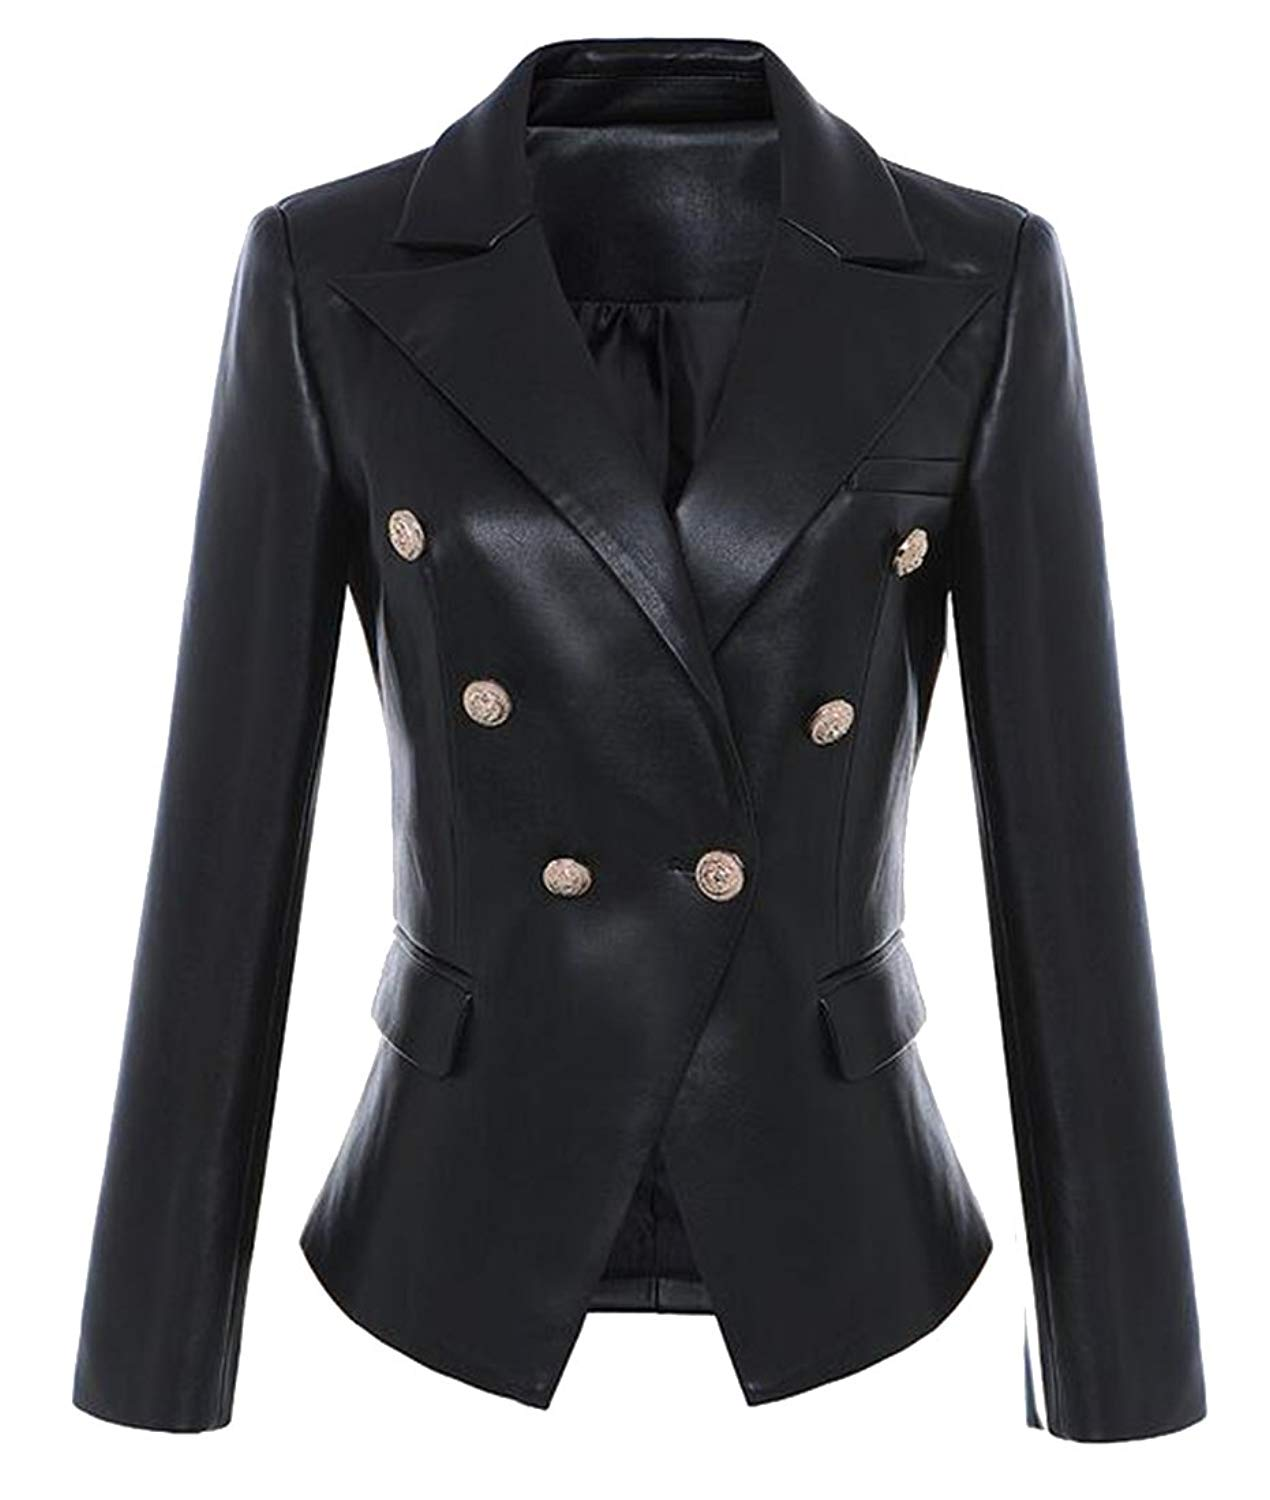 4ab98f8be4f Get Quotations · Fensajomon Womens Long Sleeve Faux Leather One Button Slim  Casual Business Blazer Jacket Coat